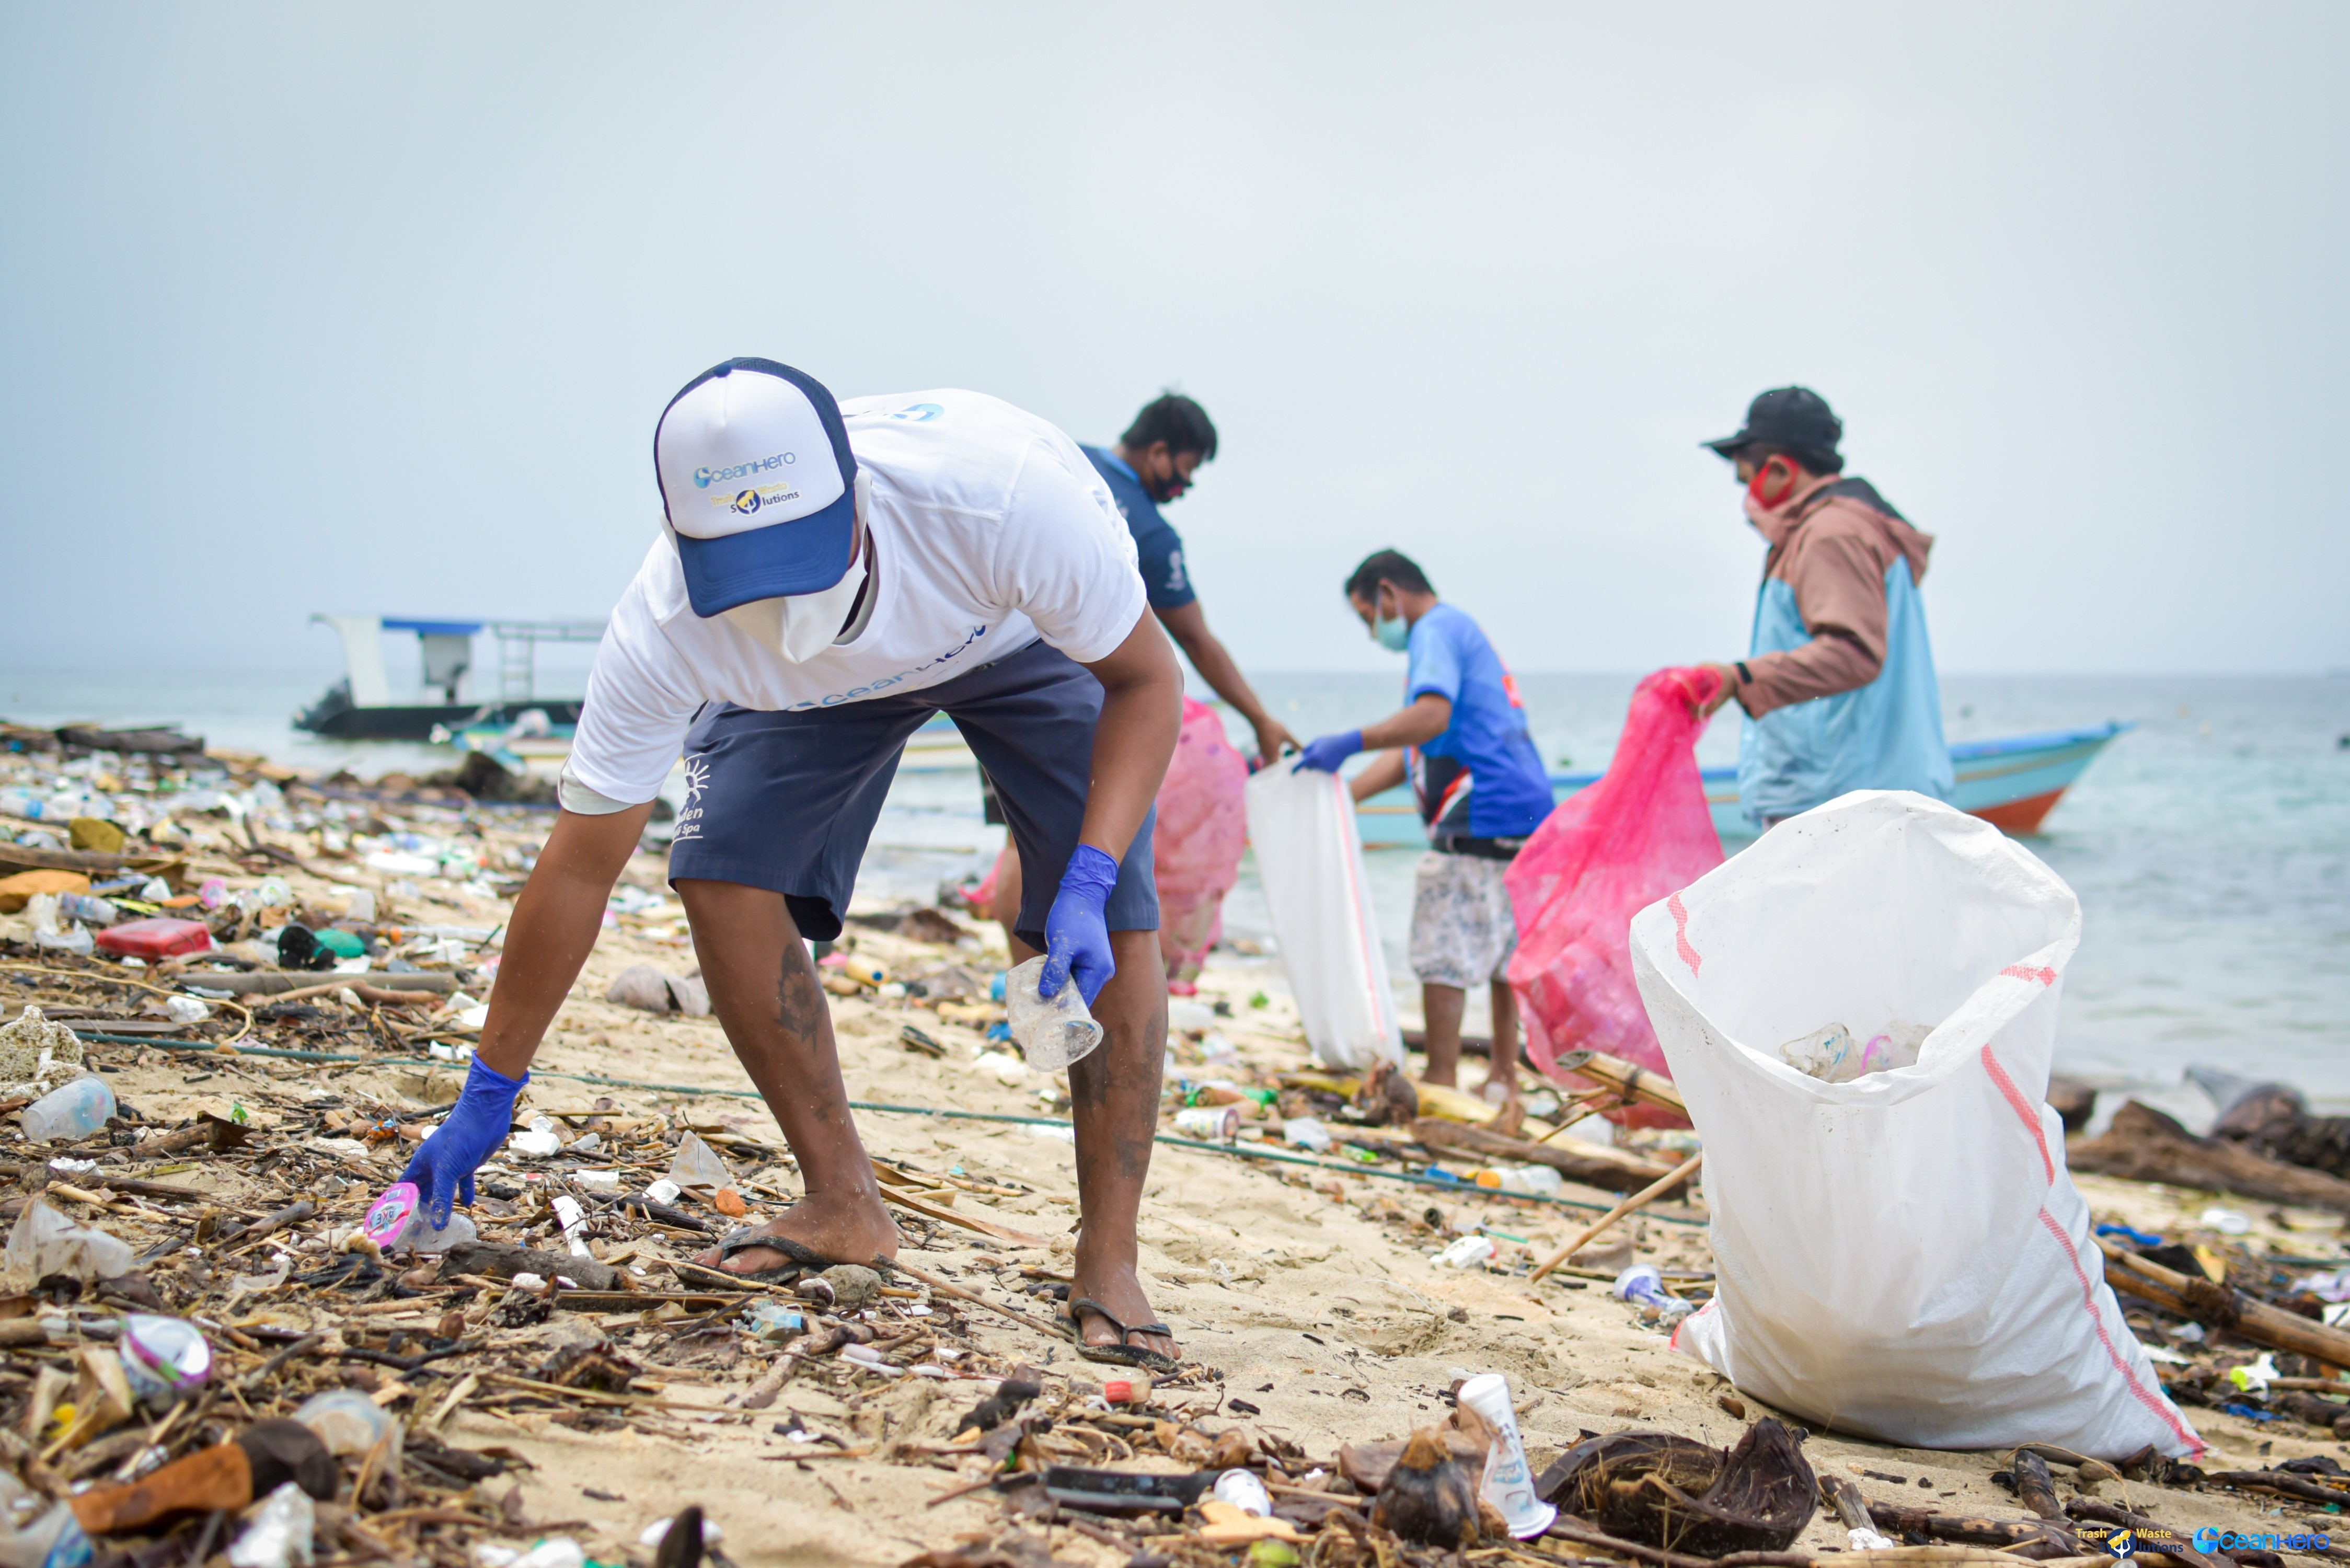 Trash Waste Solution member is part of the beach clean-up